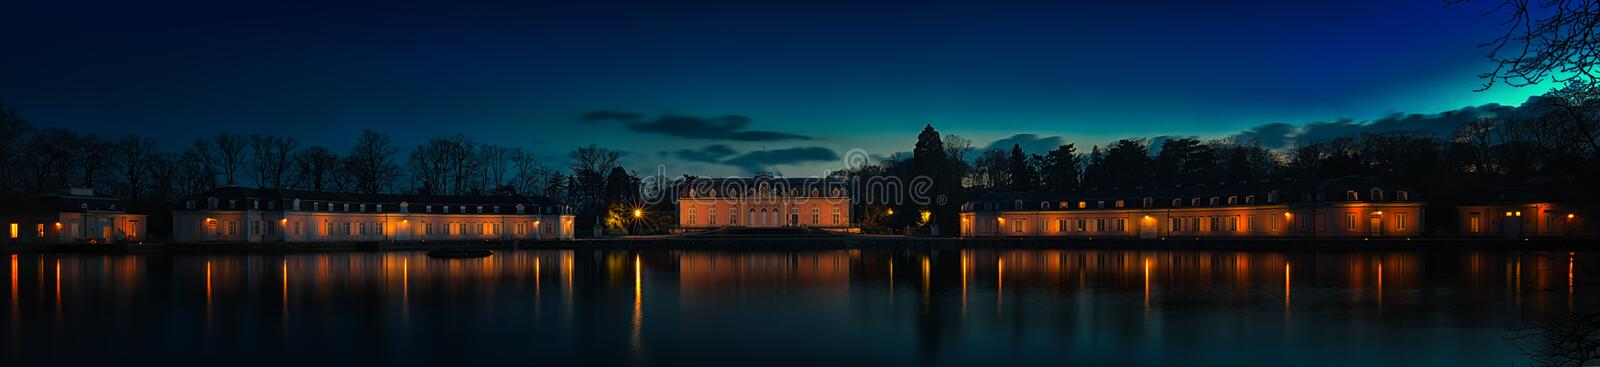 Benrath Palace. Is a Baroque-style maison de plaisance (pleasure palace) in Benrath, which is now a borough of Düsseldorf. It was erected for the Elector stock images